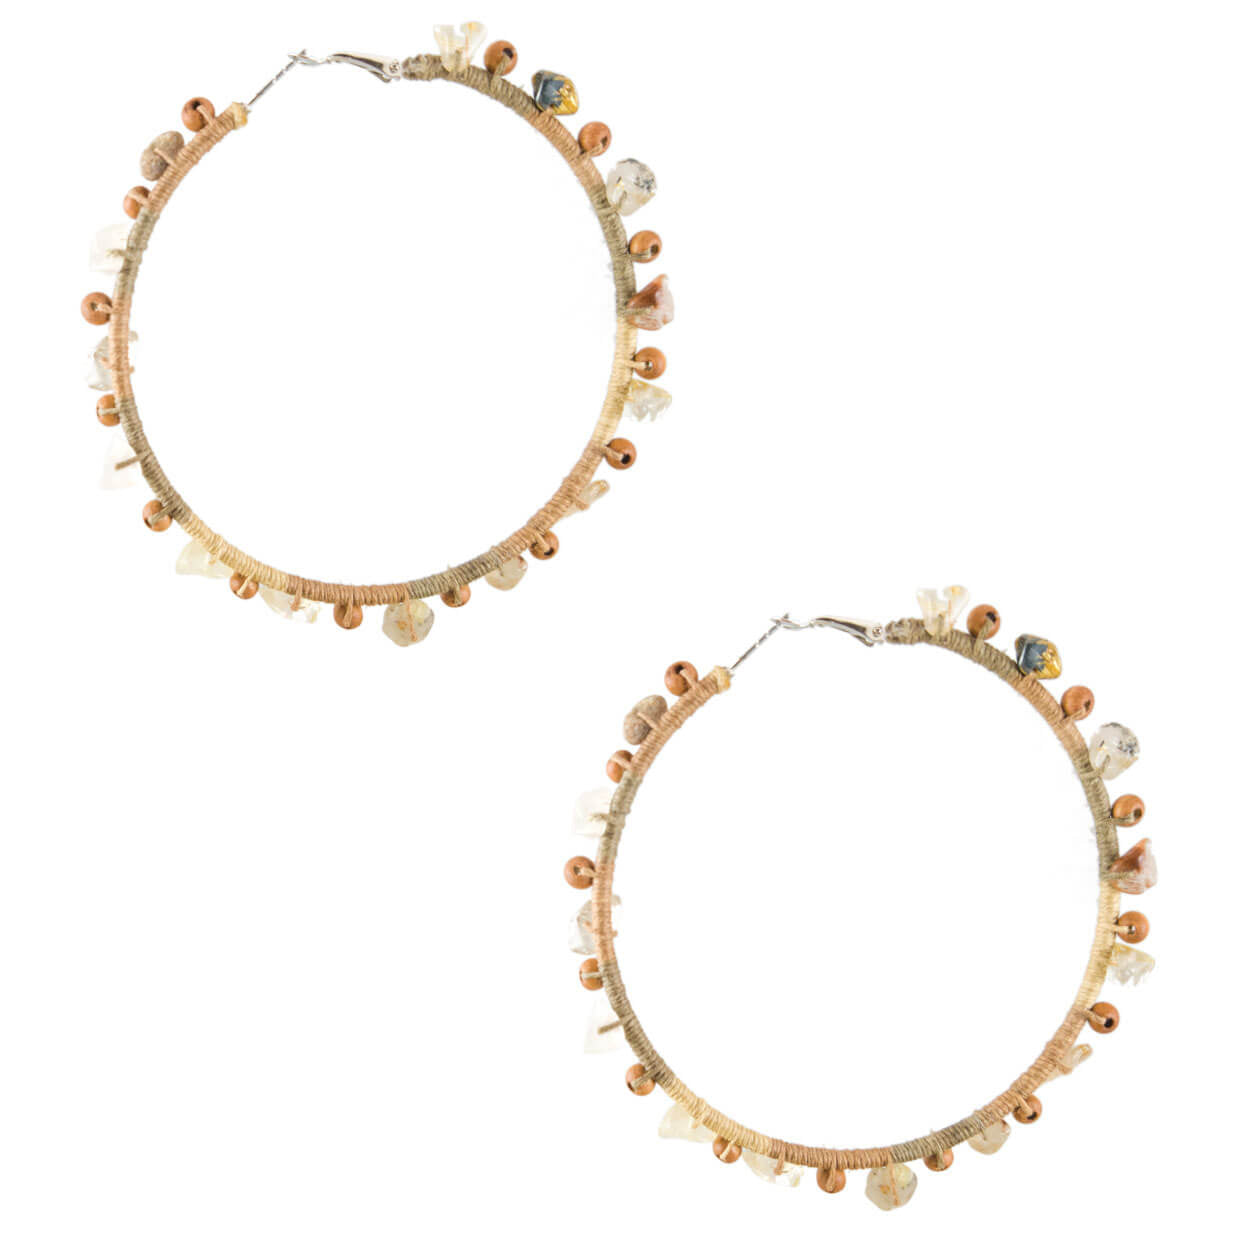 tropical beach style silver hoop earrings that are wrapped in ombre natural color hemp with wood and gemstones